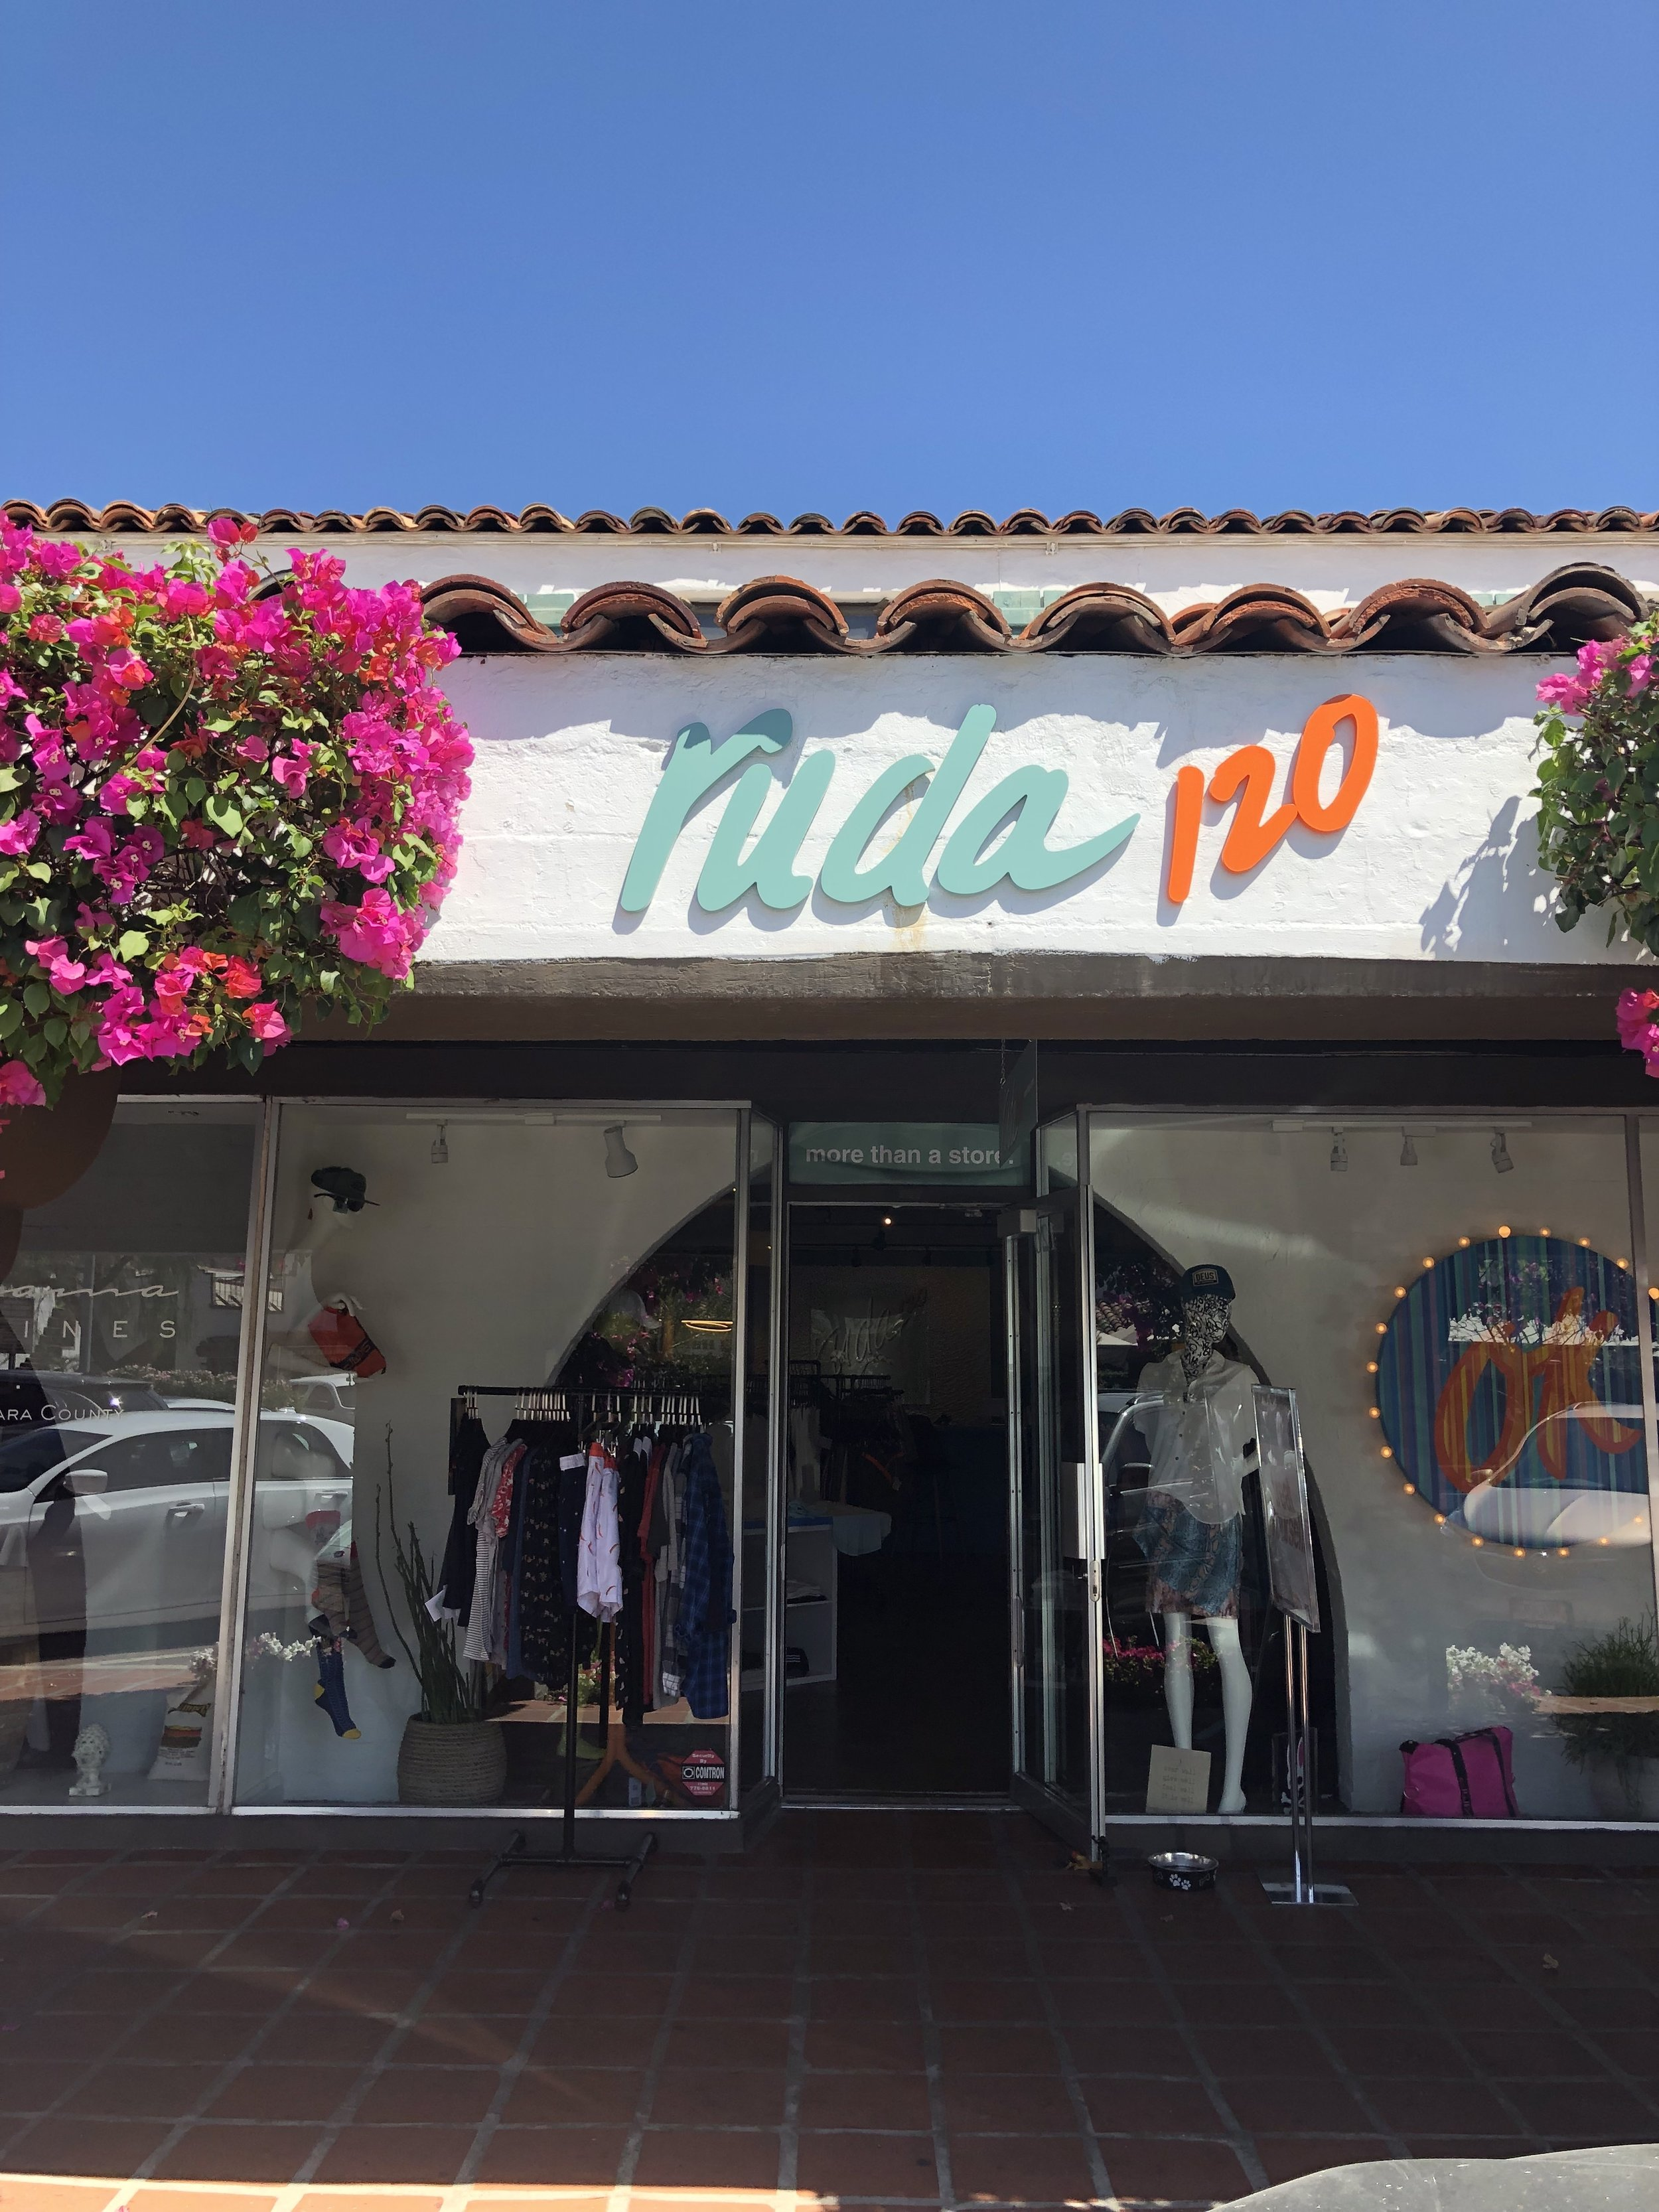 Ruda120, one of our downtown merchants participating in Pop Up Palm Springs on 4/16/19  120 La Plaza, Palm Springs, CA 92262, 760.832.7100